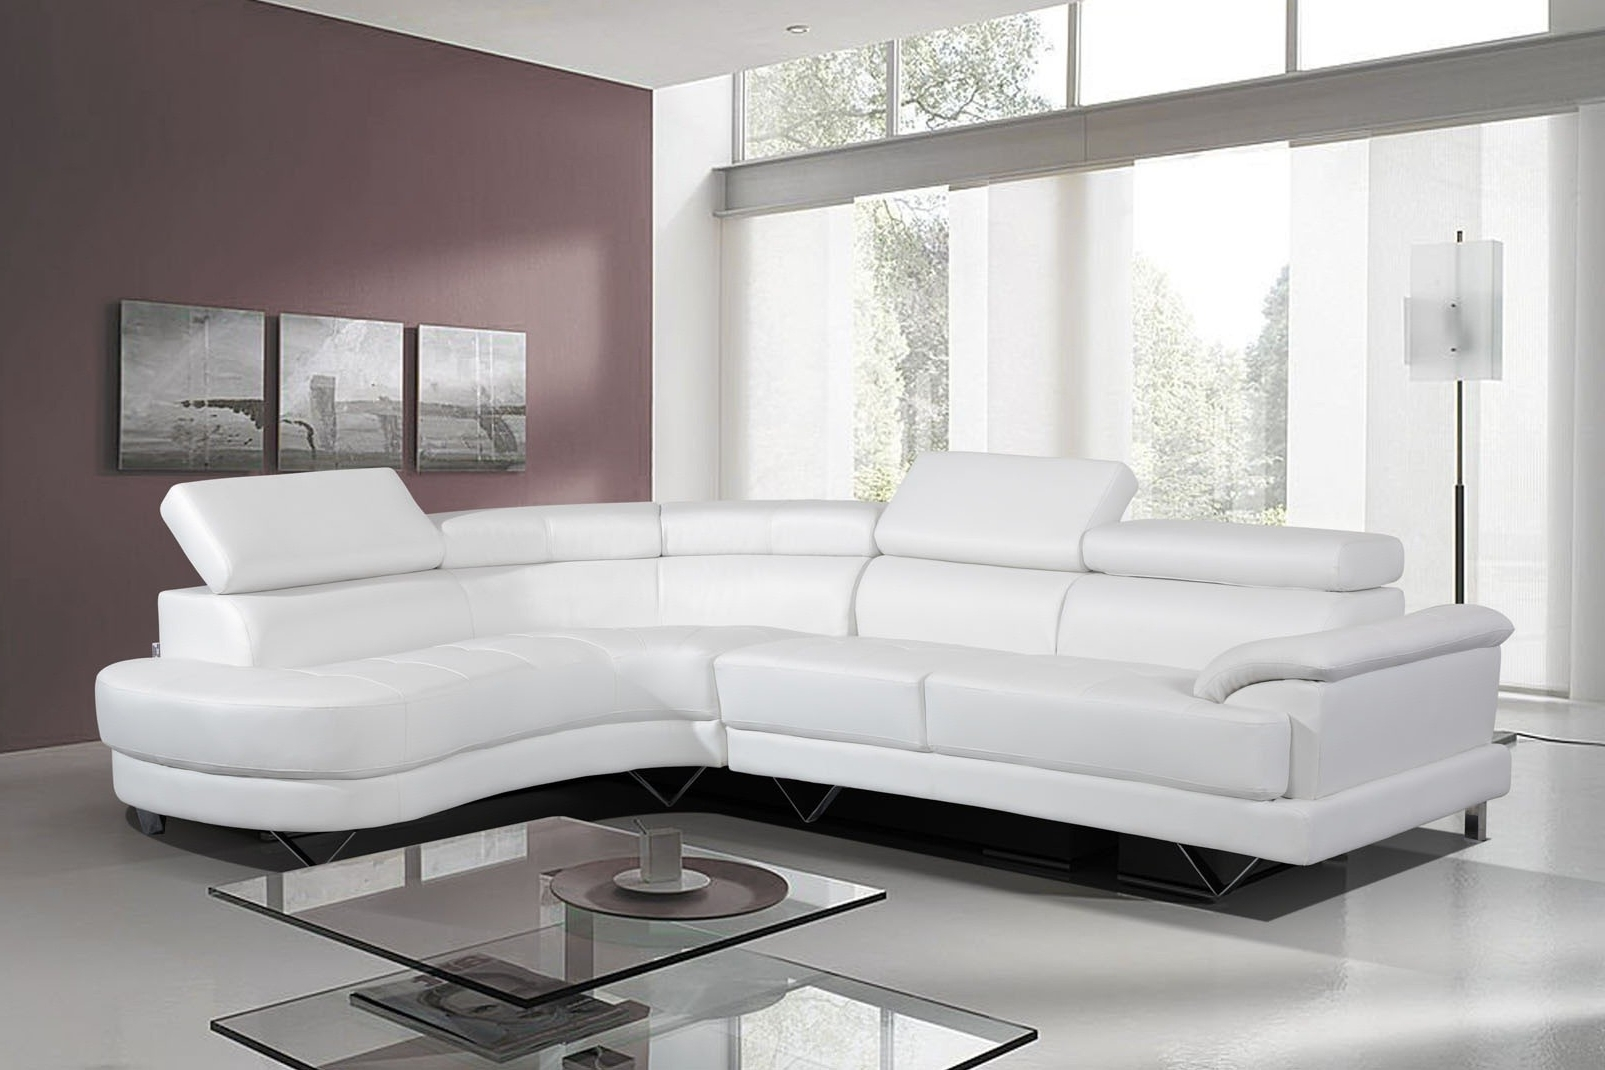 Leather Corner Sofas Pertaining To Well Known Leather Sofa Corner – Home And Textiles (View 12 of 15)